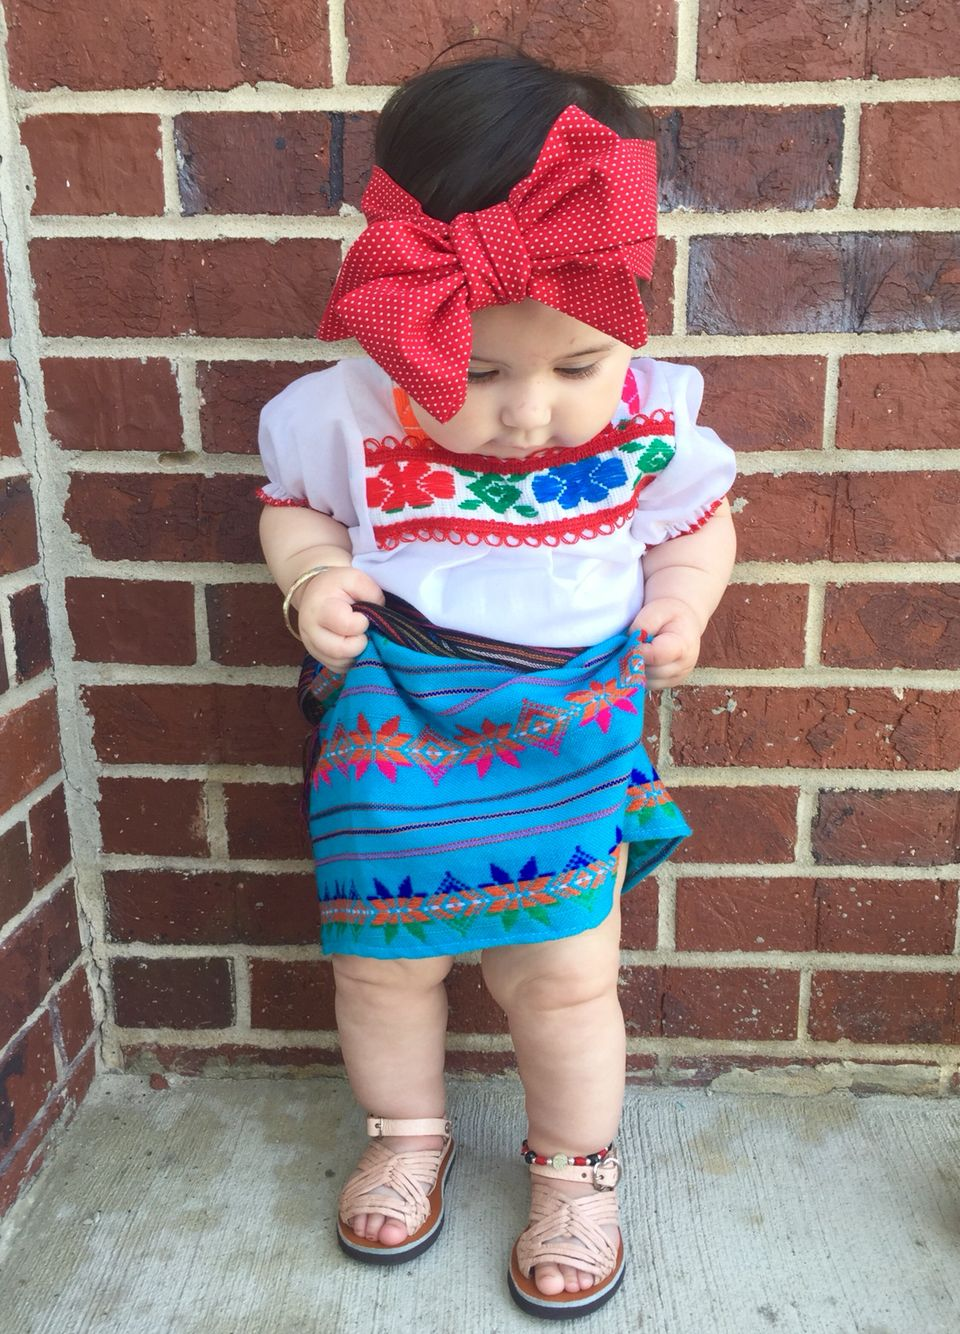 Baby Girl Fashion Amelia Carter in traditional Mexican ...